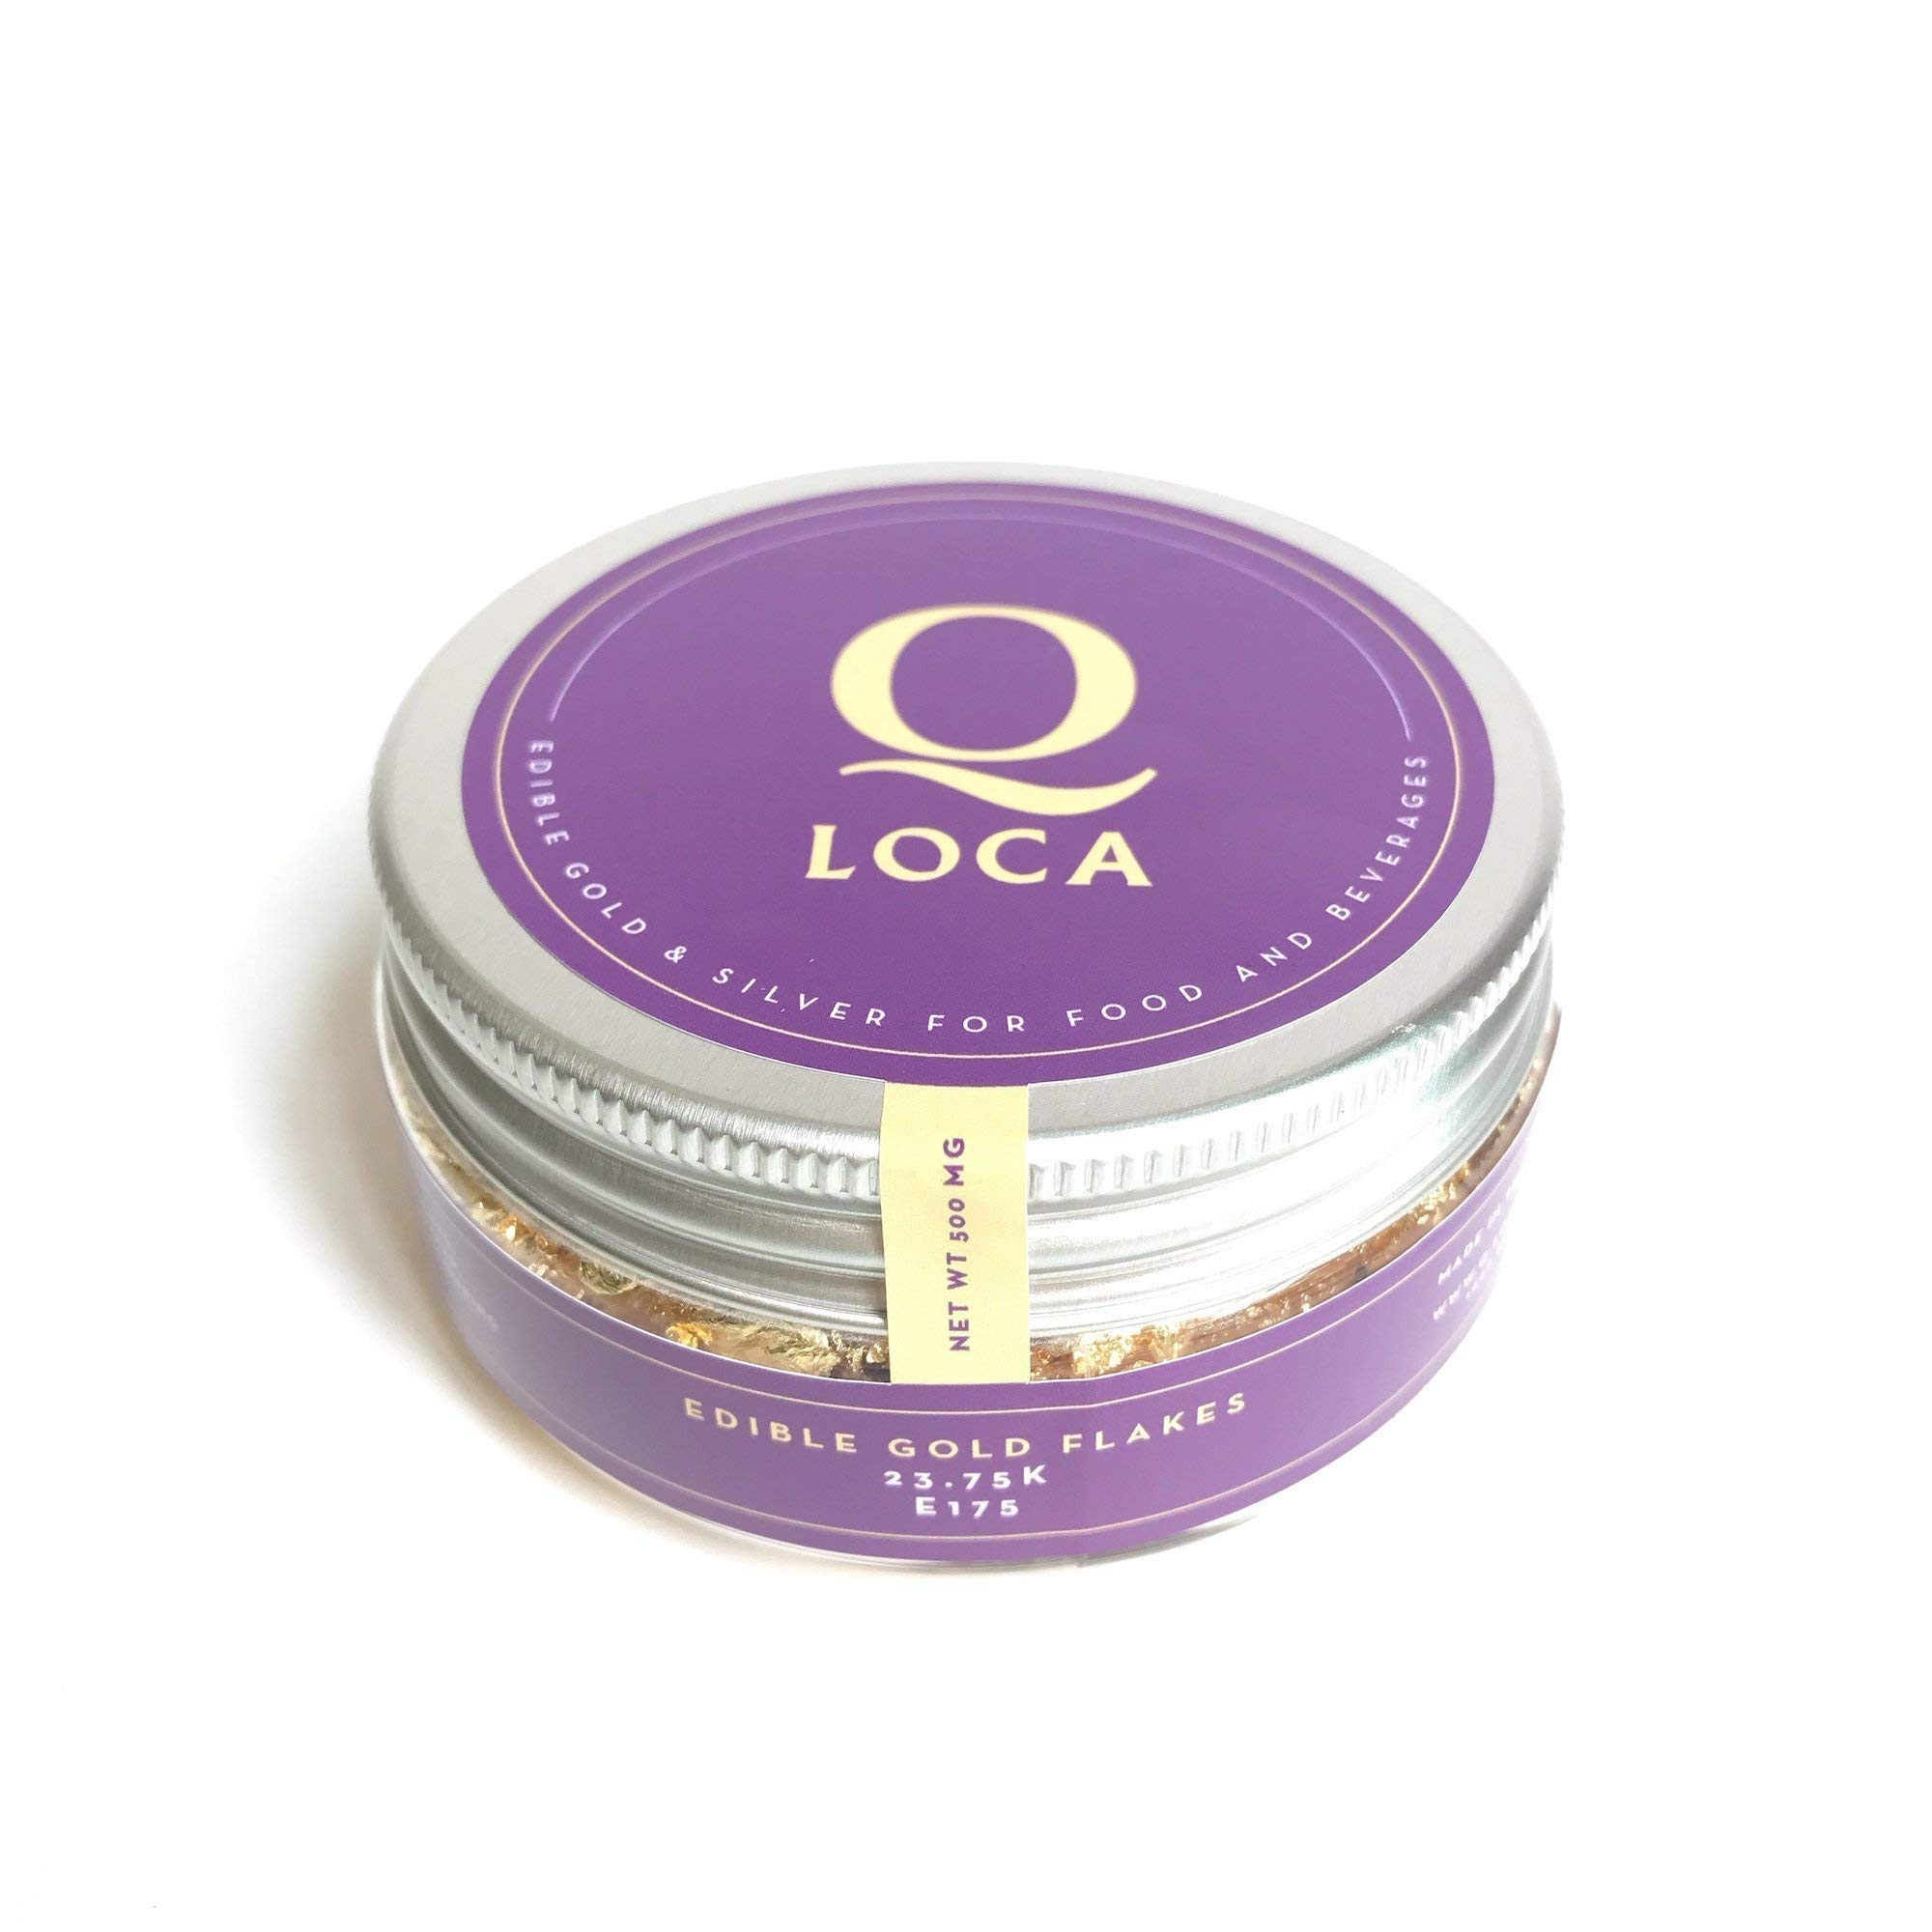 Q-loca 23.75K Edible Gold Leaf Flakes, Decorating Cake (500 mg) by Q-loca (Image #1)